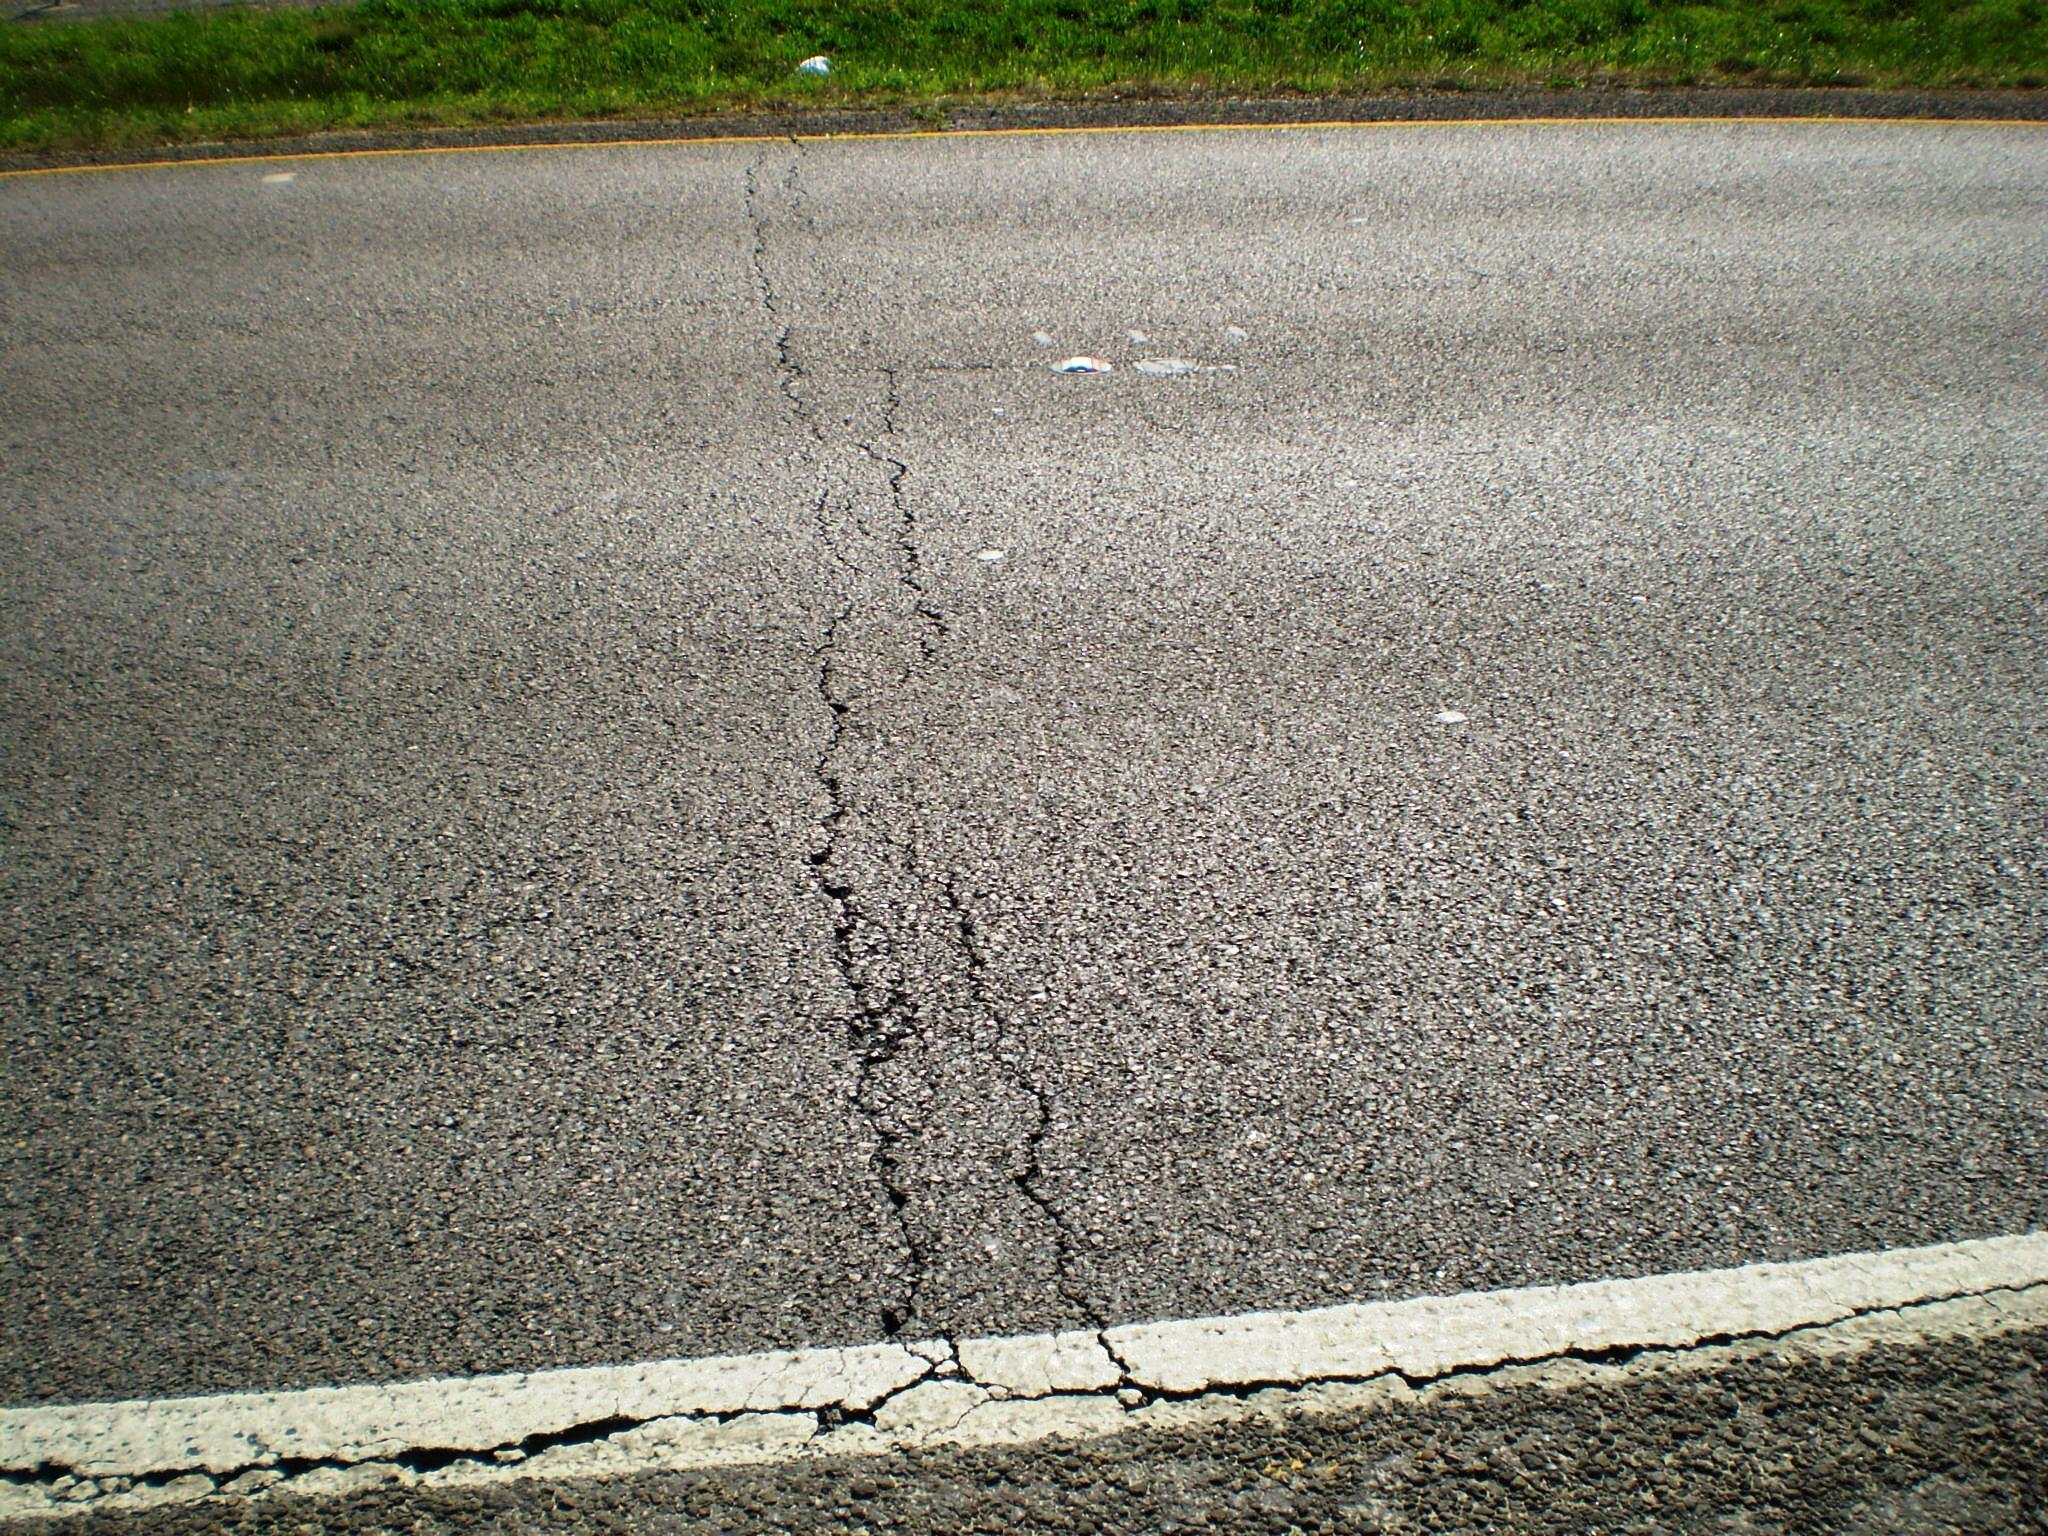 Low-temperature cracking can trigger fissures that span entire lanes of pavement, as shown here on a highway near Beaumont, Minnesota.